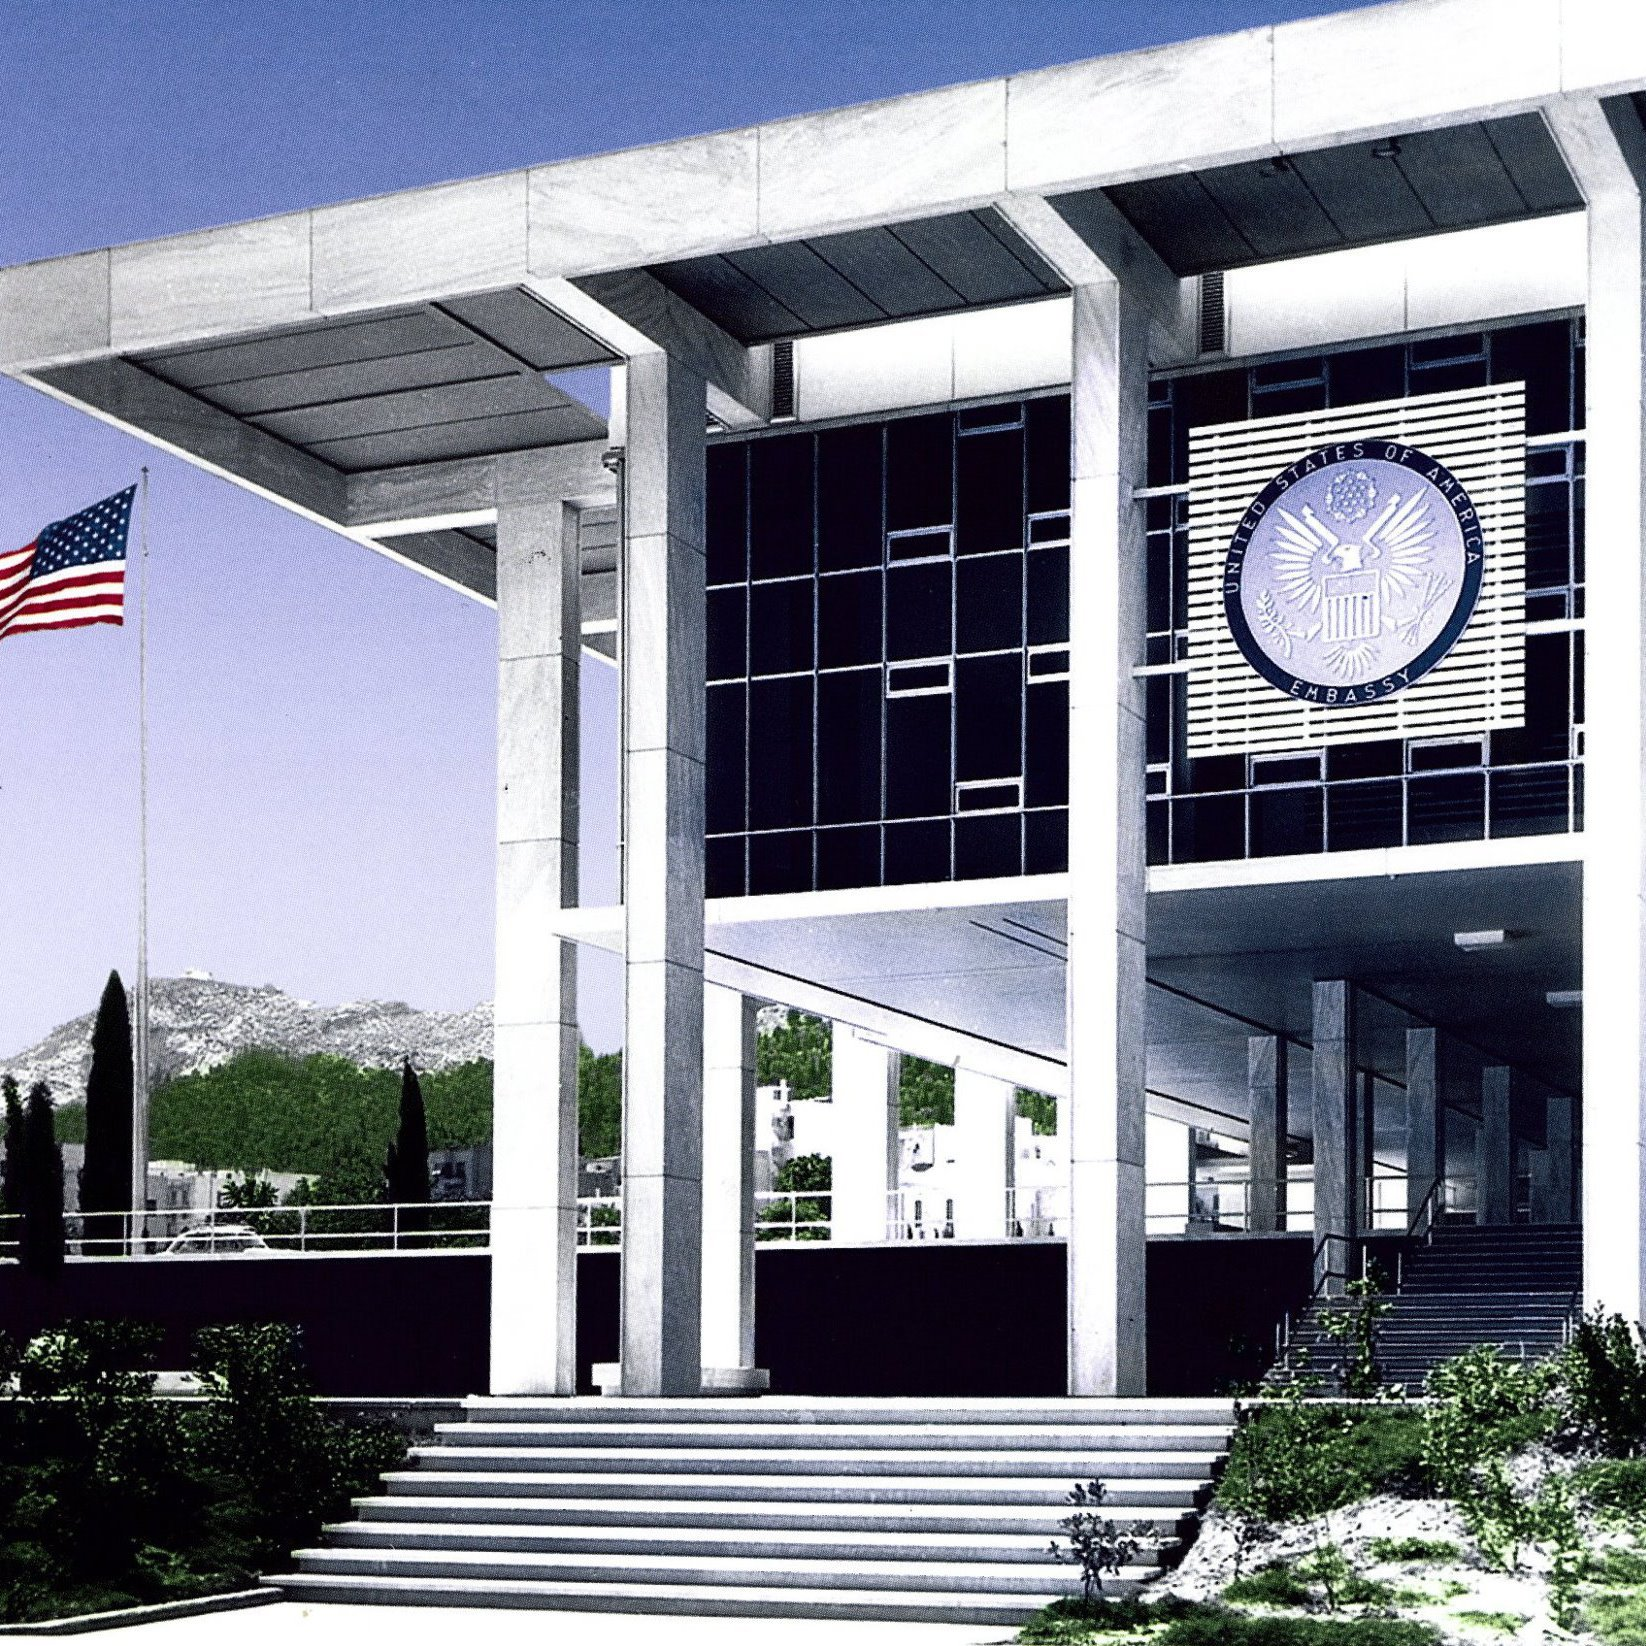 The STEM Stars Greece students competition is funded by the U.S. Embassy in Athens. Credit: Facebook / US Embassy Athens